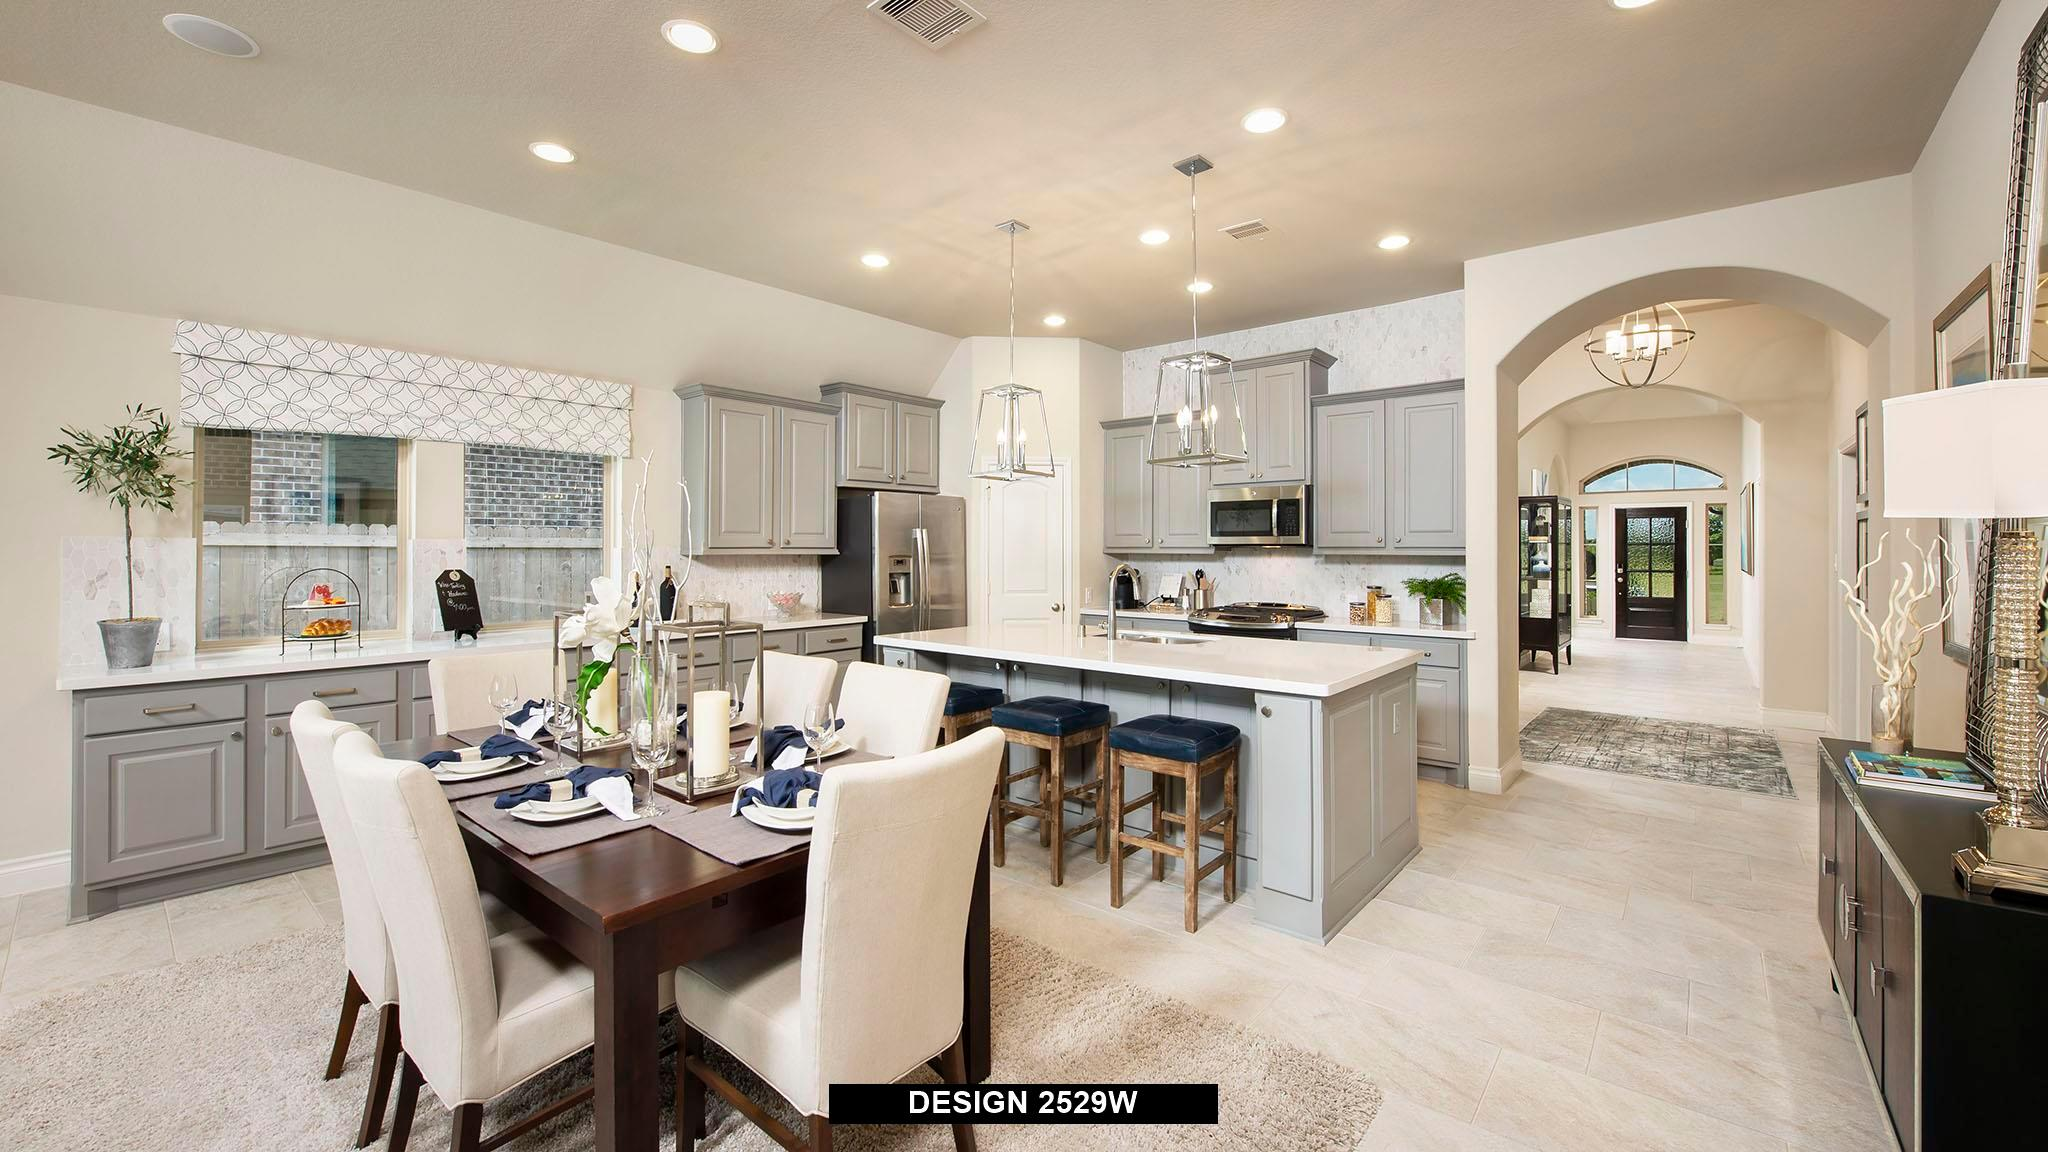 Kitchen featured in the 2529W By Perry Homes in San Antonio, TX